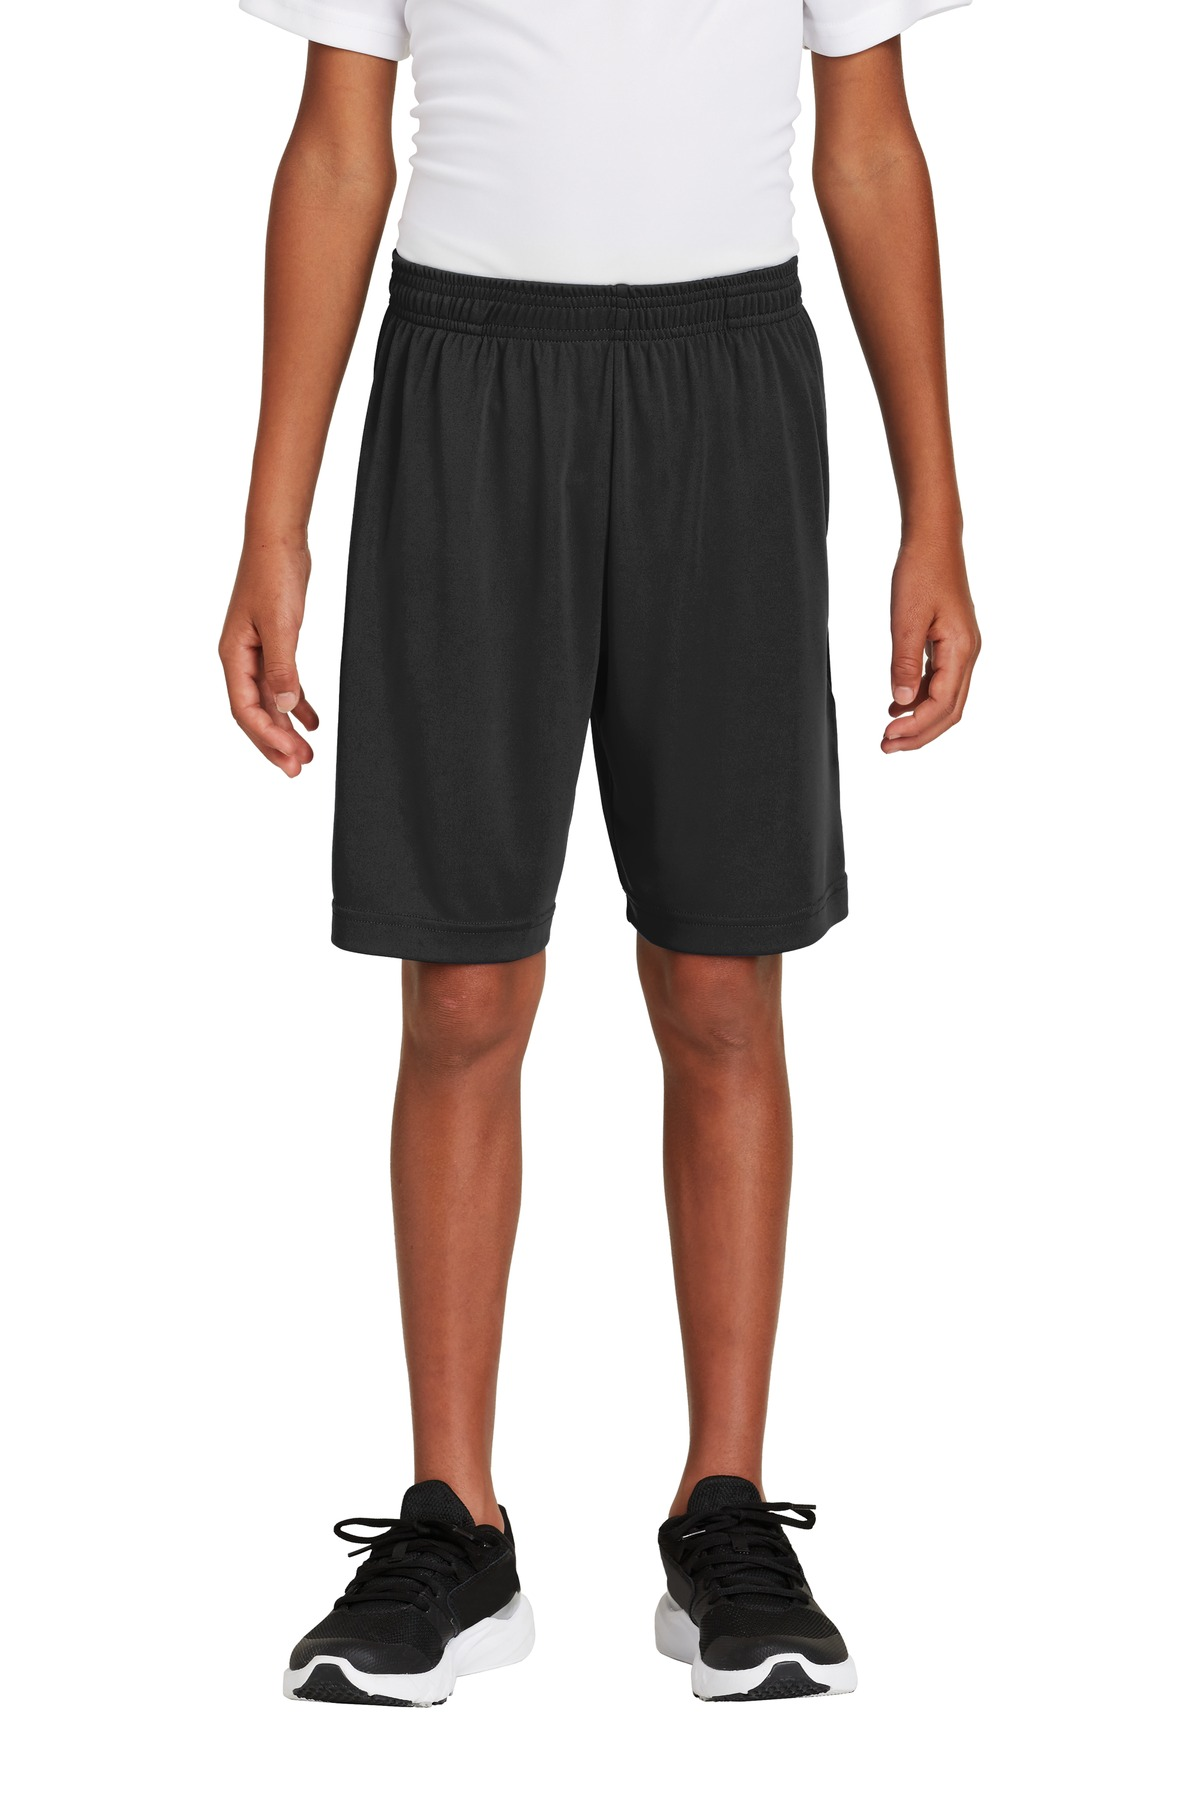 Sport-Tek  ®  Youth PosiCharge  ®  Competitor  ™  Pocketed Short. YST355P - Black